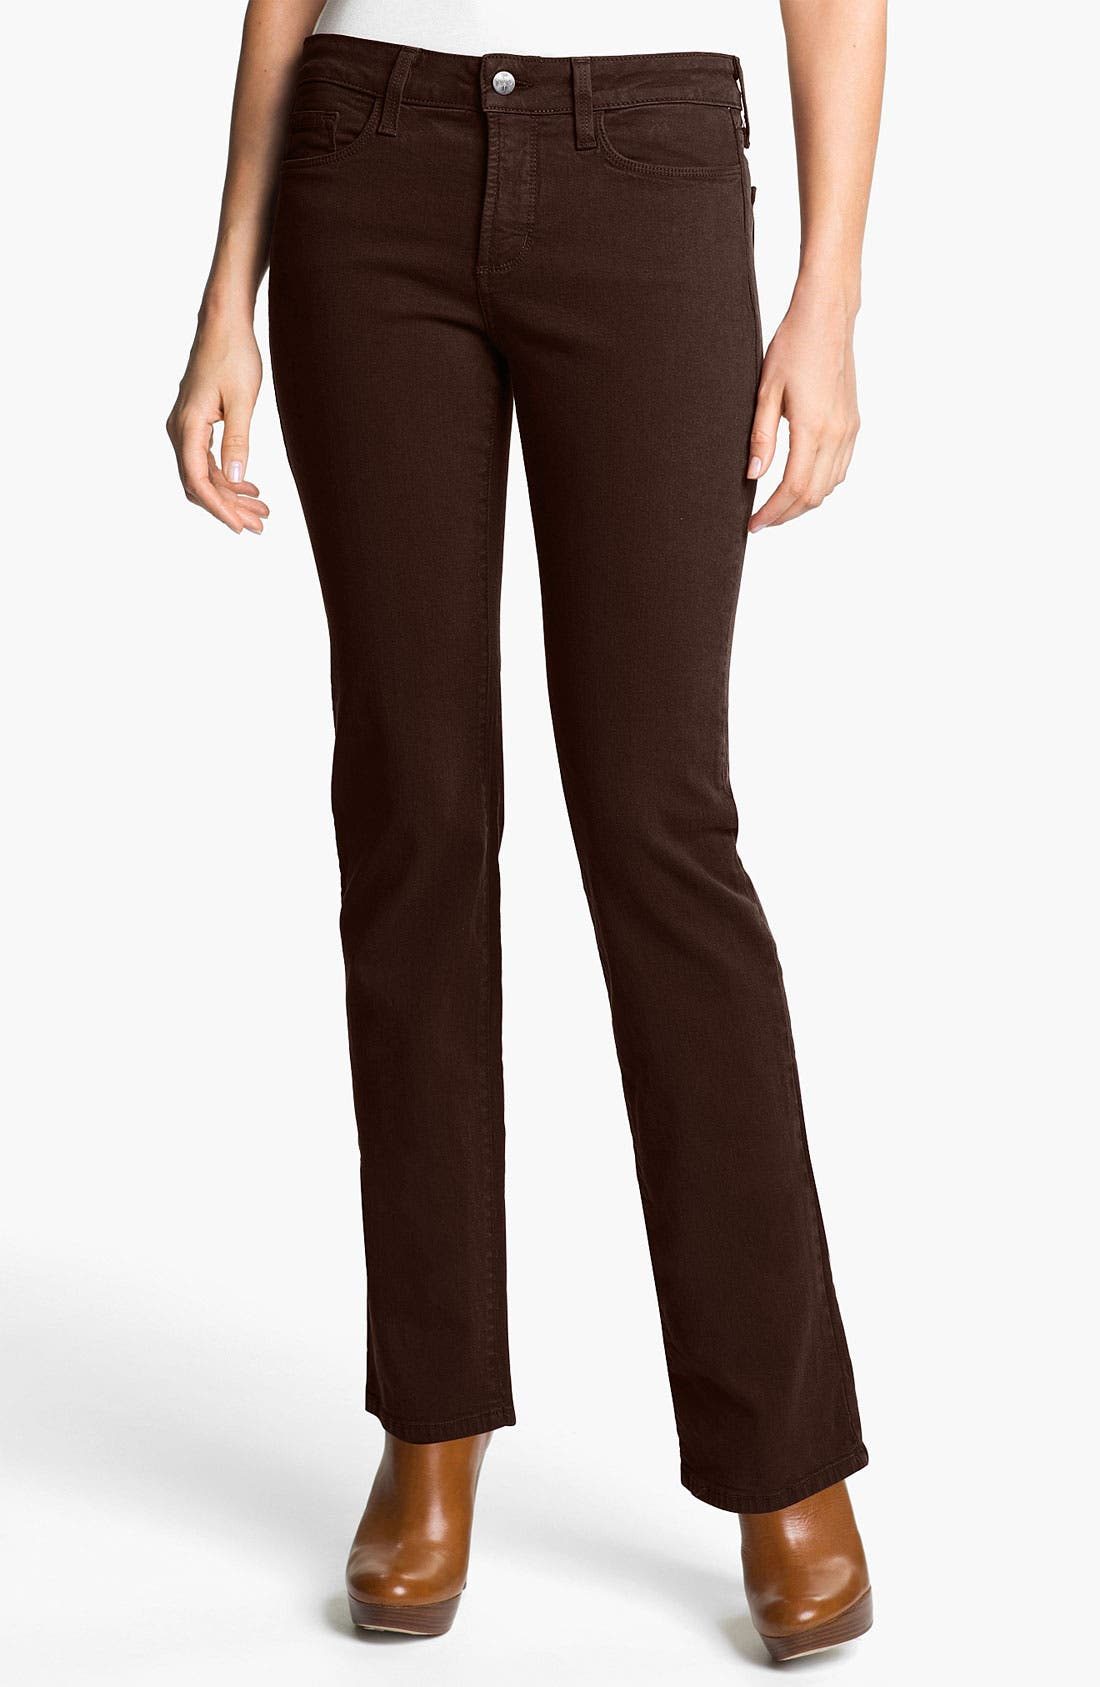 Alternate Image 1 Selected - NYDJ 'Marilyn' Embellished Straight Leg Stretch Jeans (Petite)